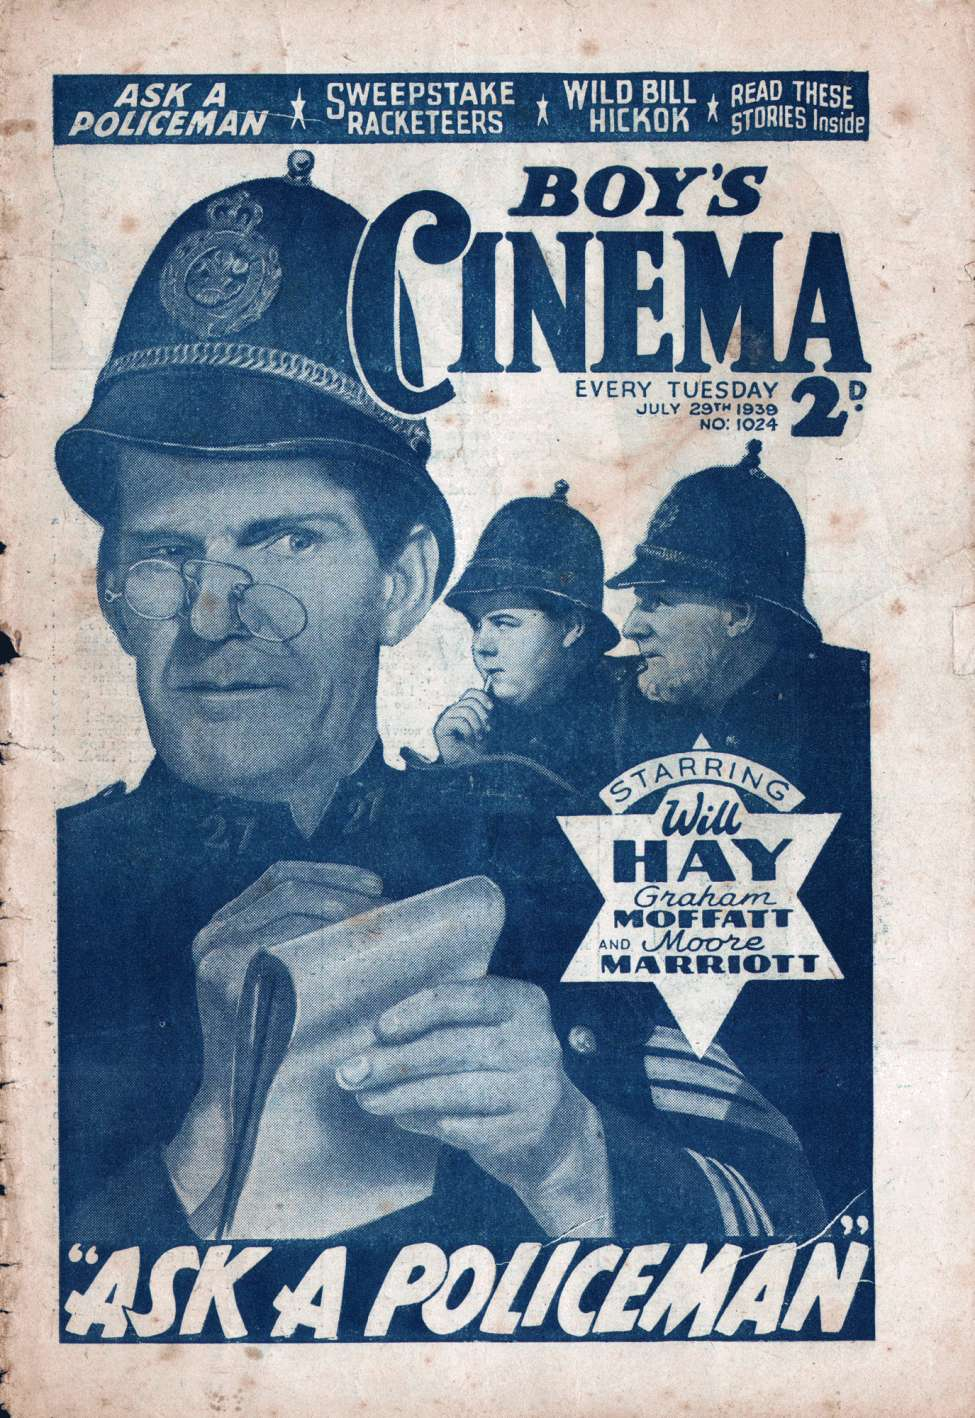 Comic Book Cover For Boy's Cinema 1024 - Ask A Policeman starring Will Hay